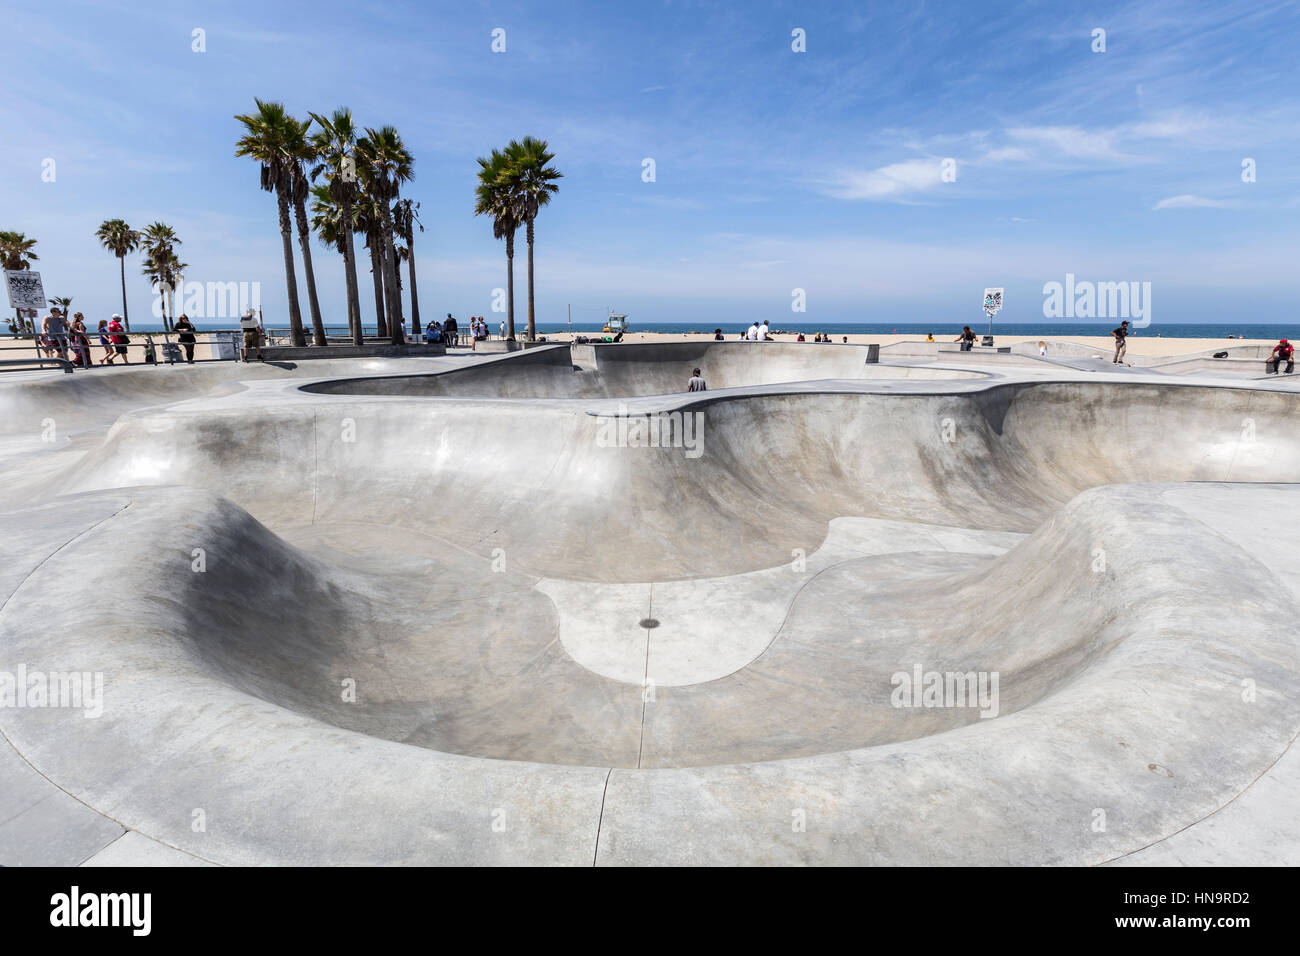 Editorial view of the Venice Beach public skate board park in Los Angeles, California. - Stock Image